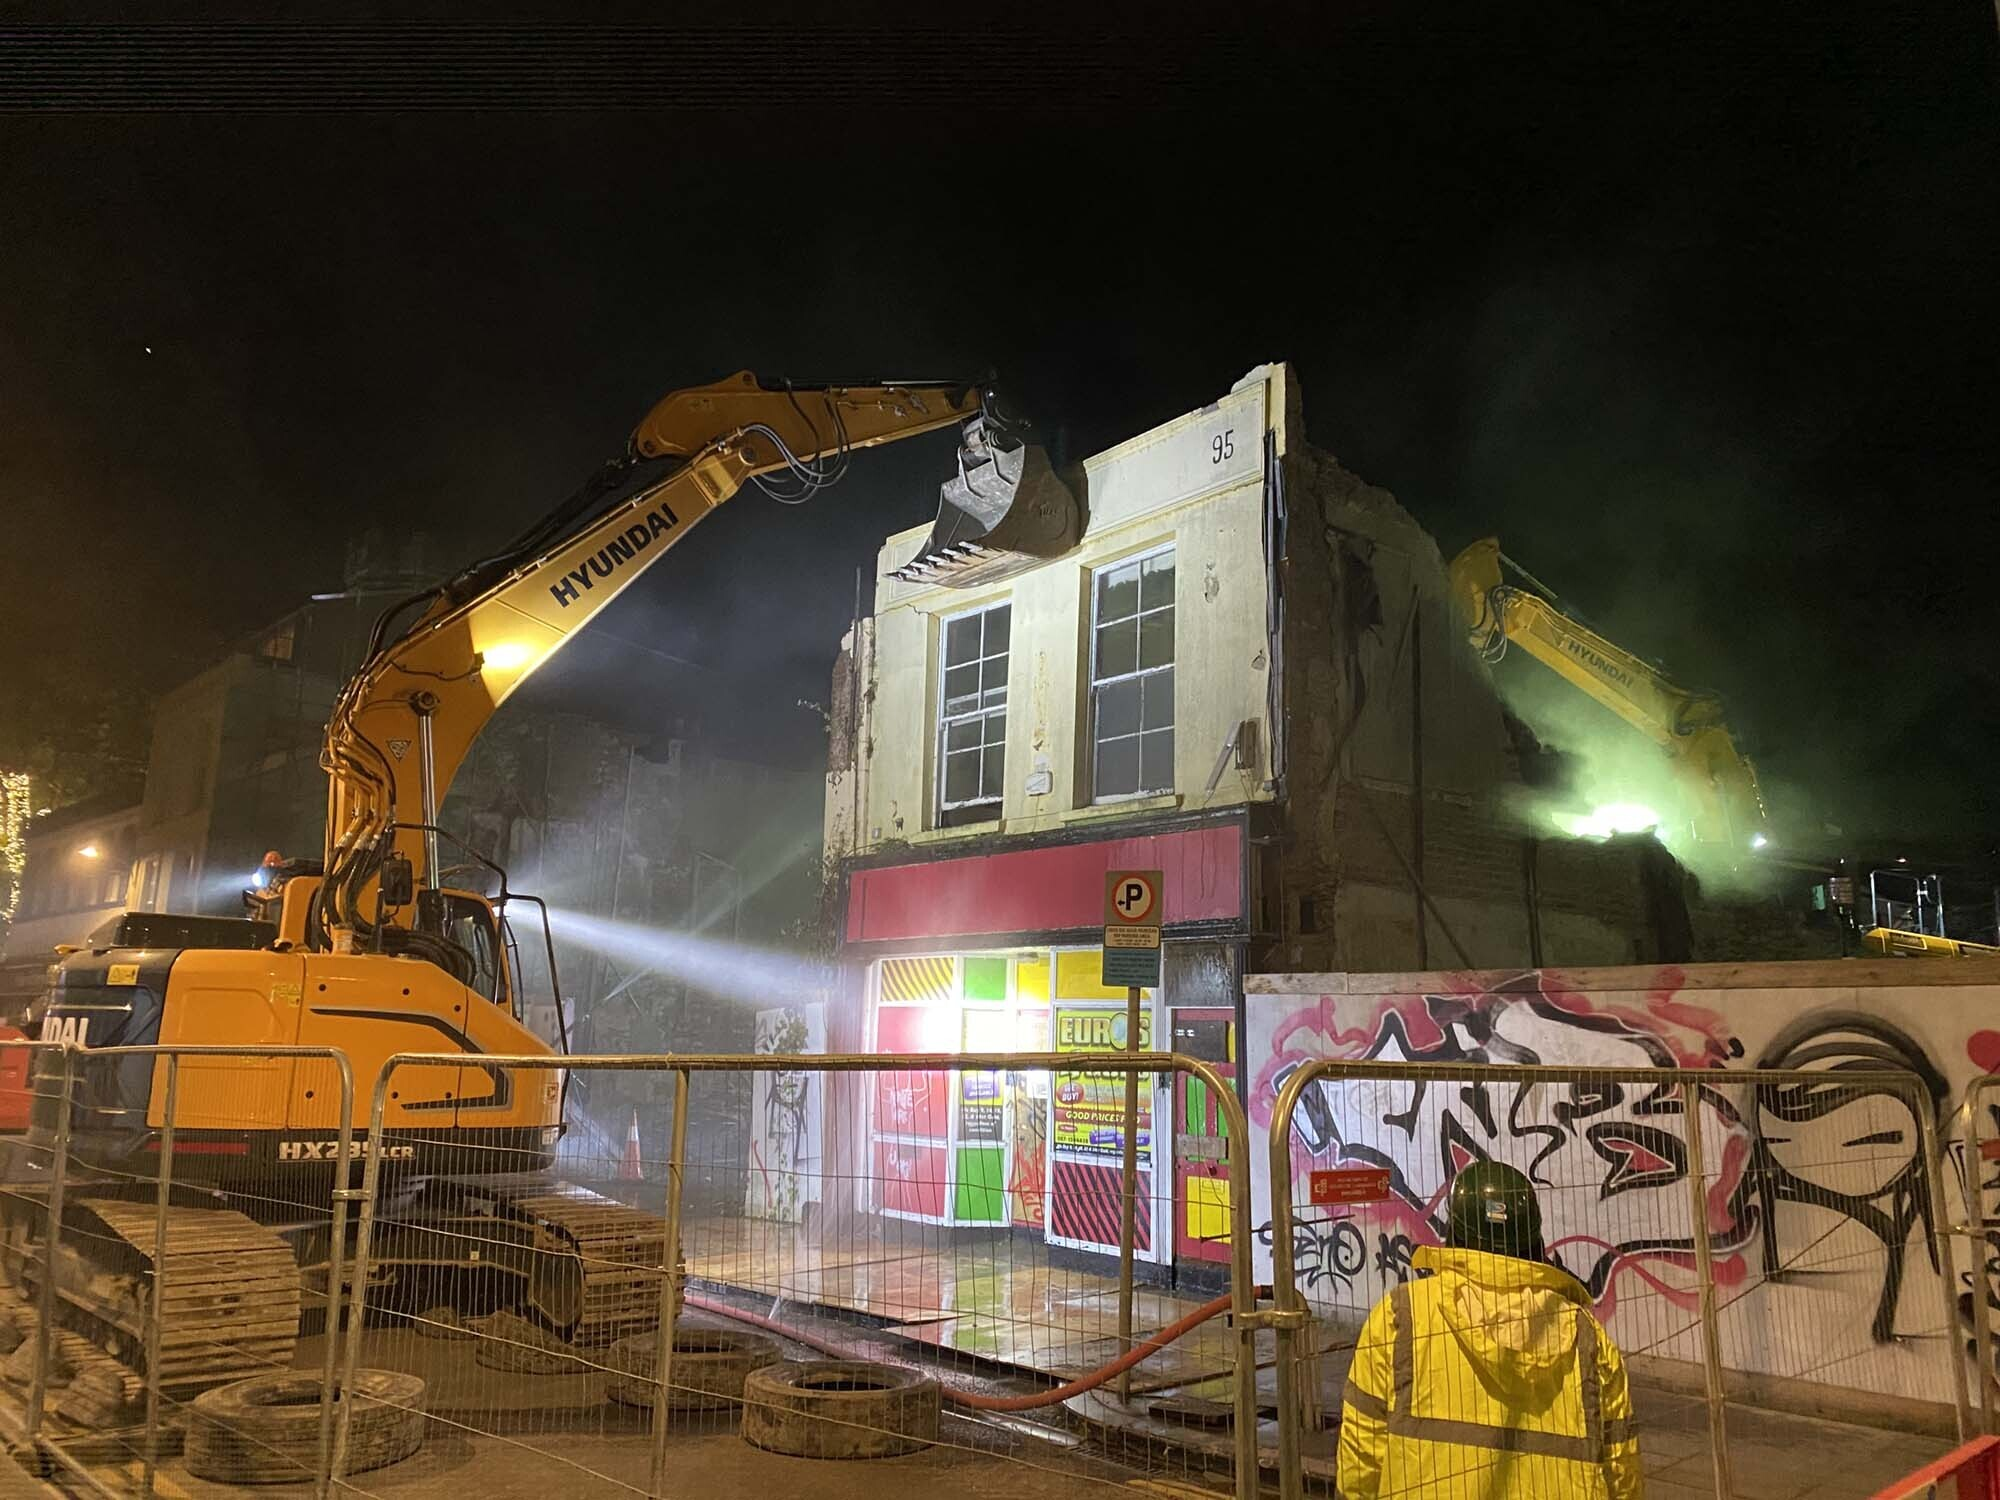 The demolition of the premises at 95 North Main Street, Cork for a development of student apartments.